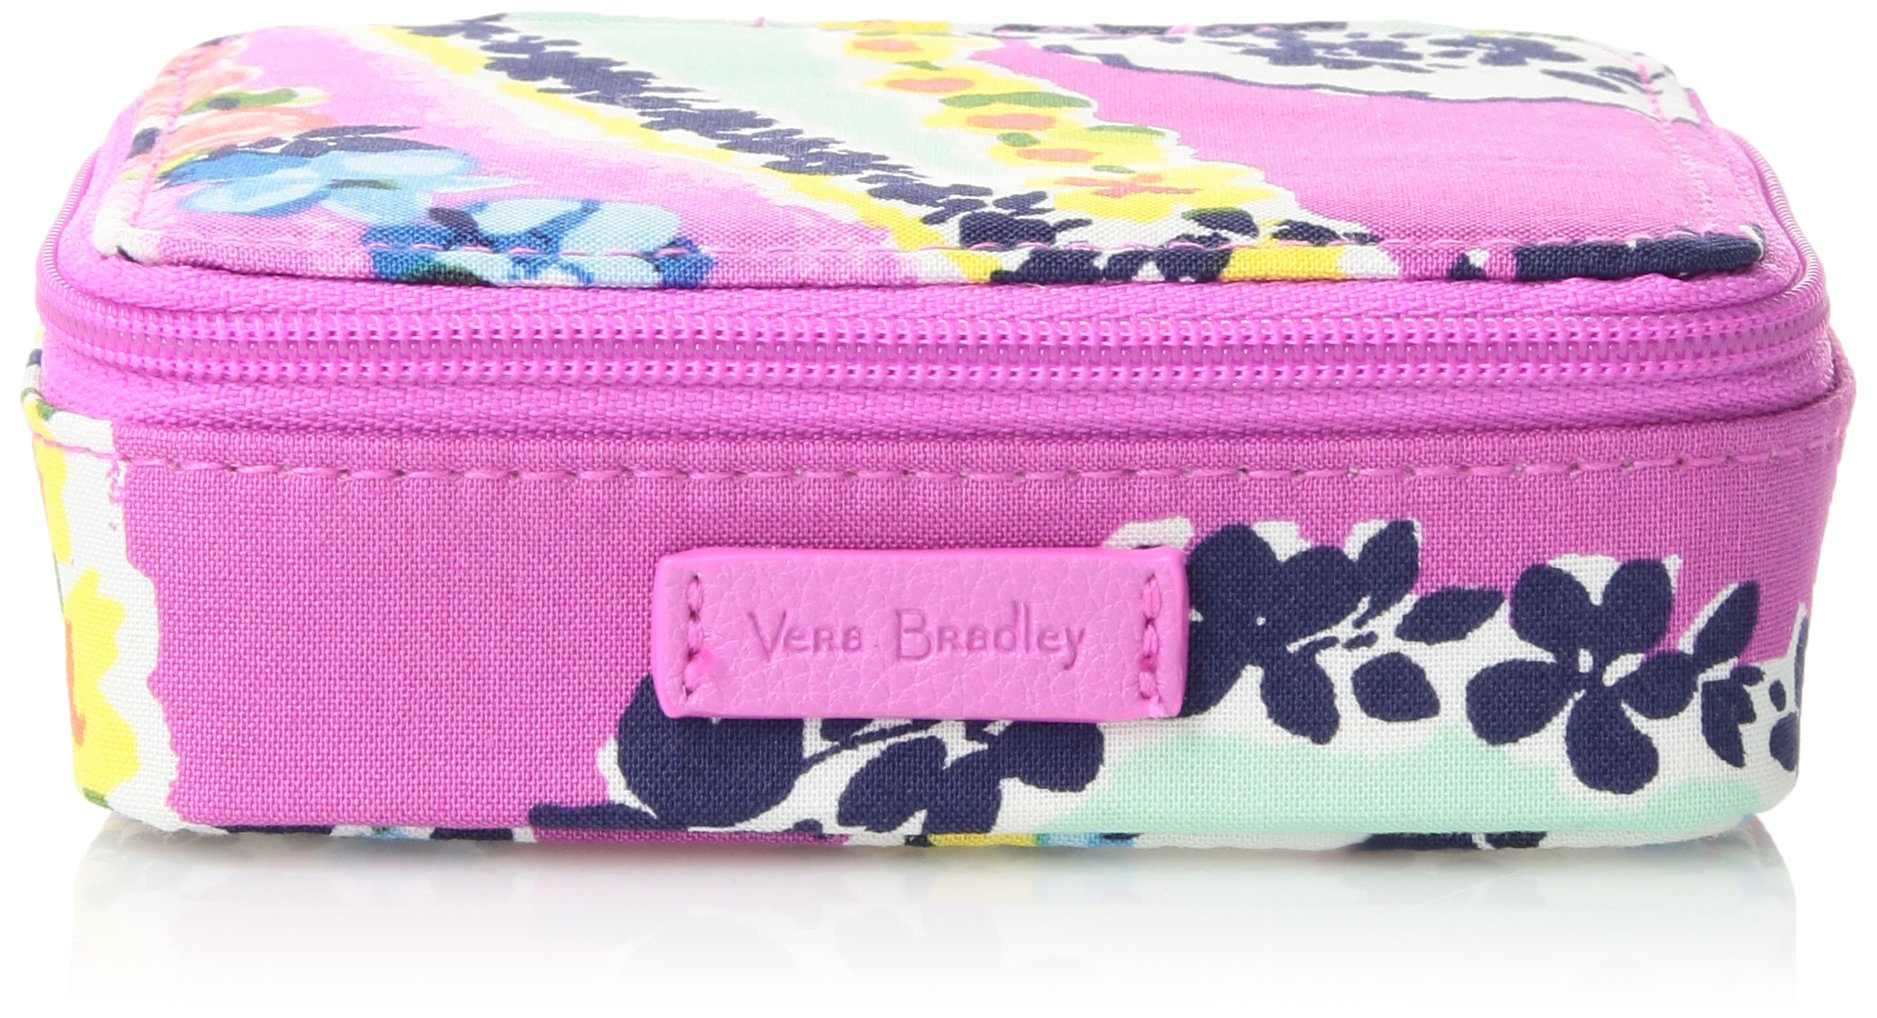 Vera Bradley Iconic Travel Pill Case, Signature Cotton, Wildflower Paisley